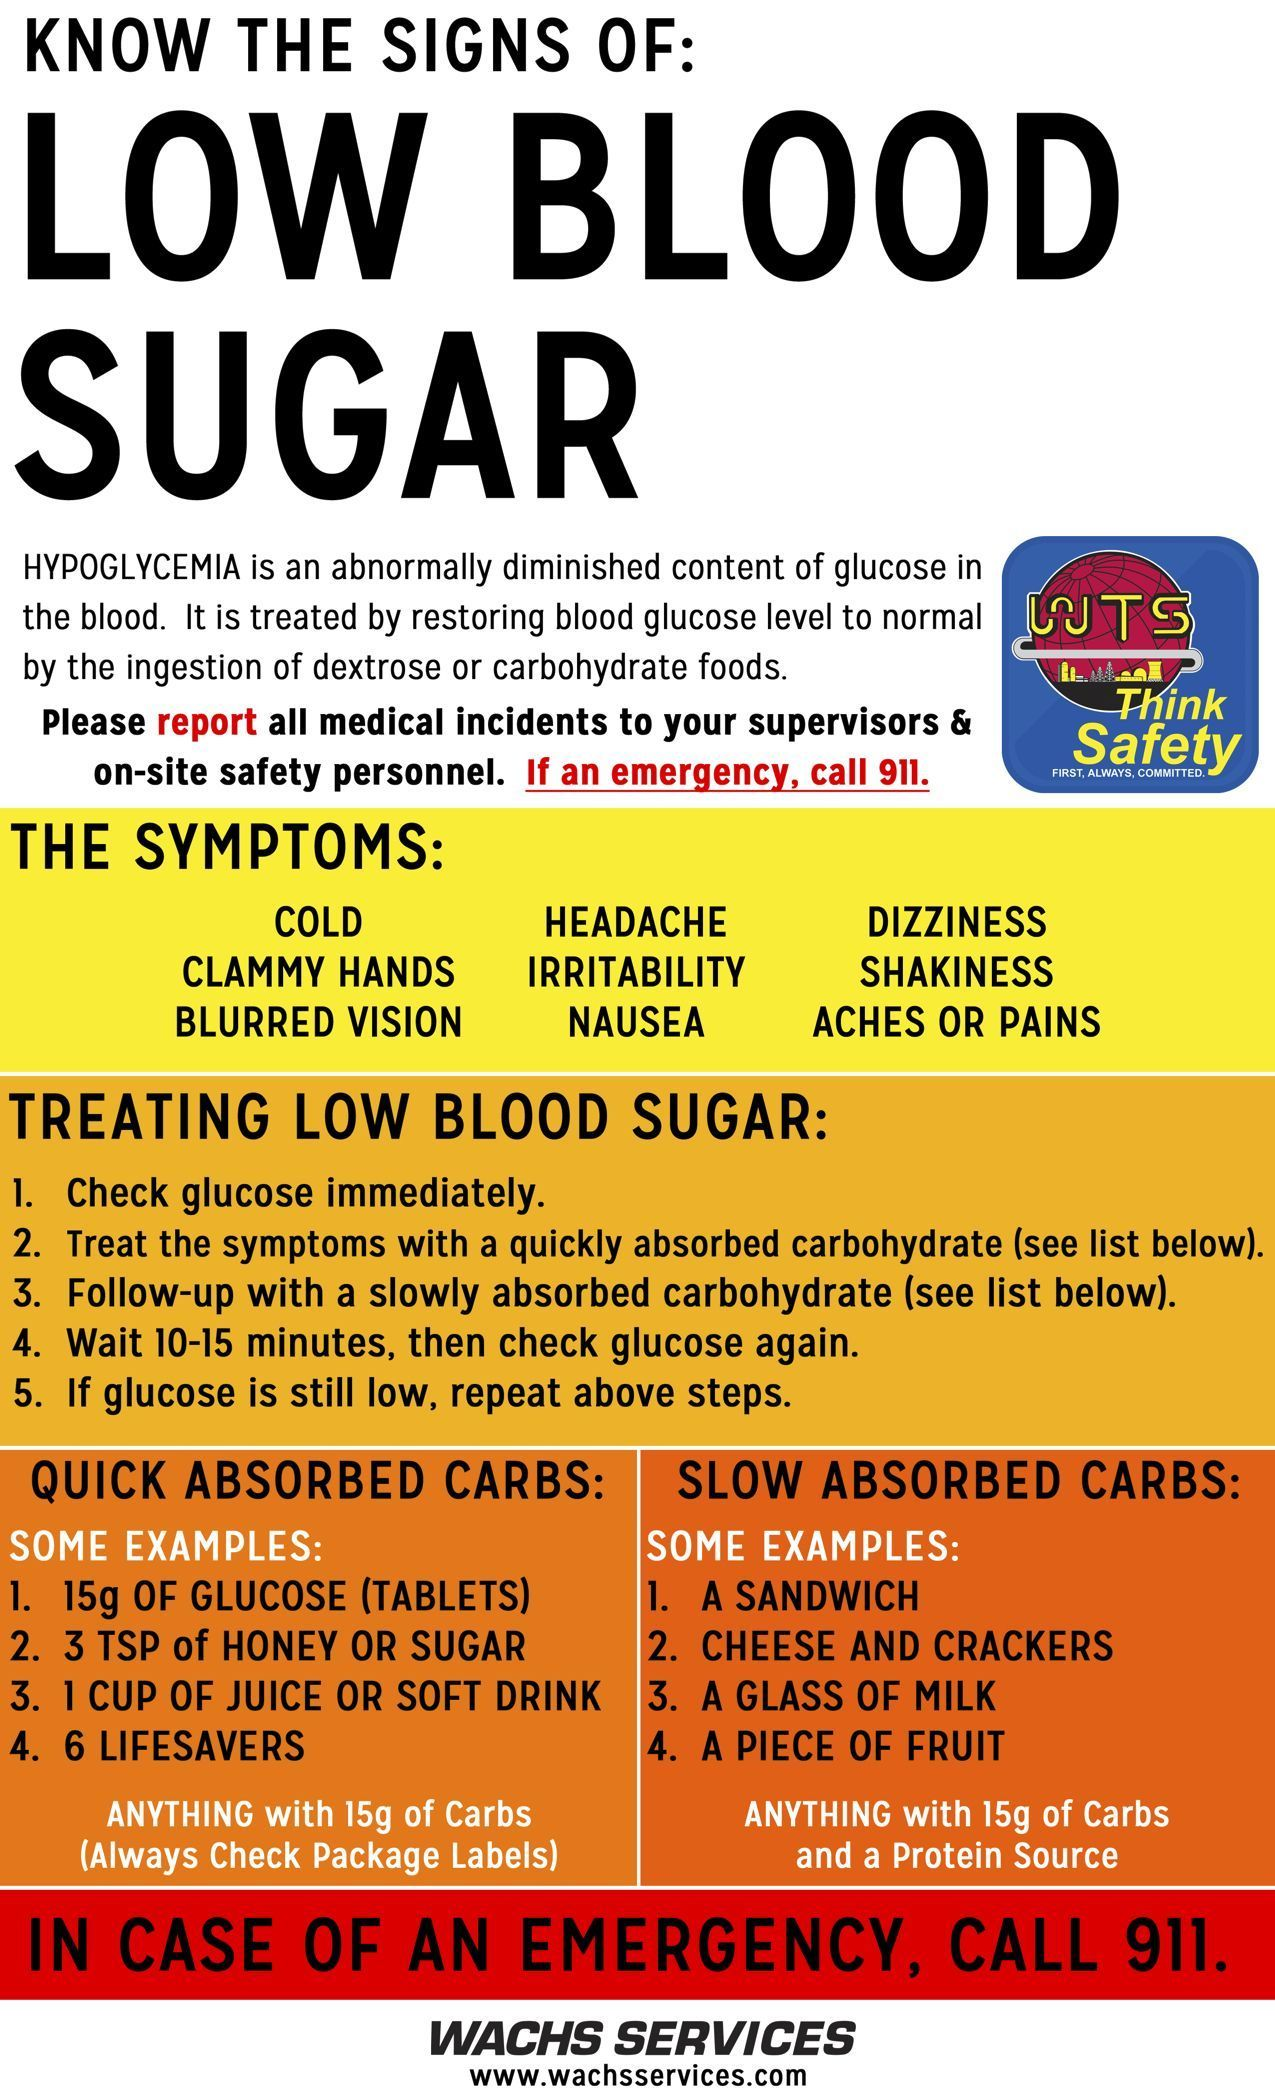 Sugar in the blood: what to do